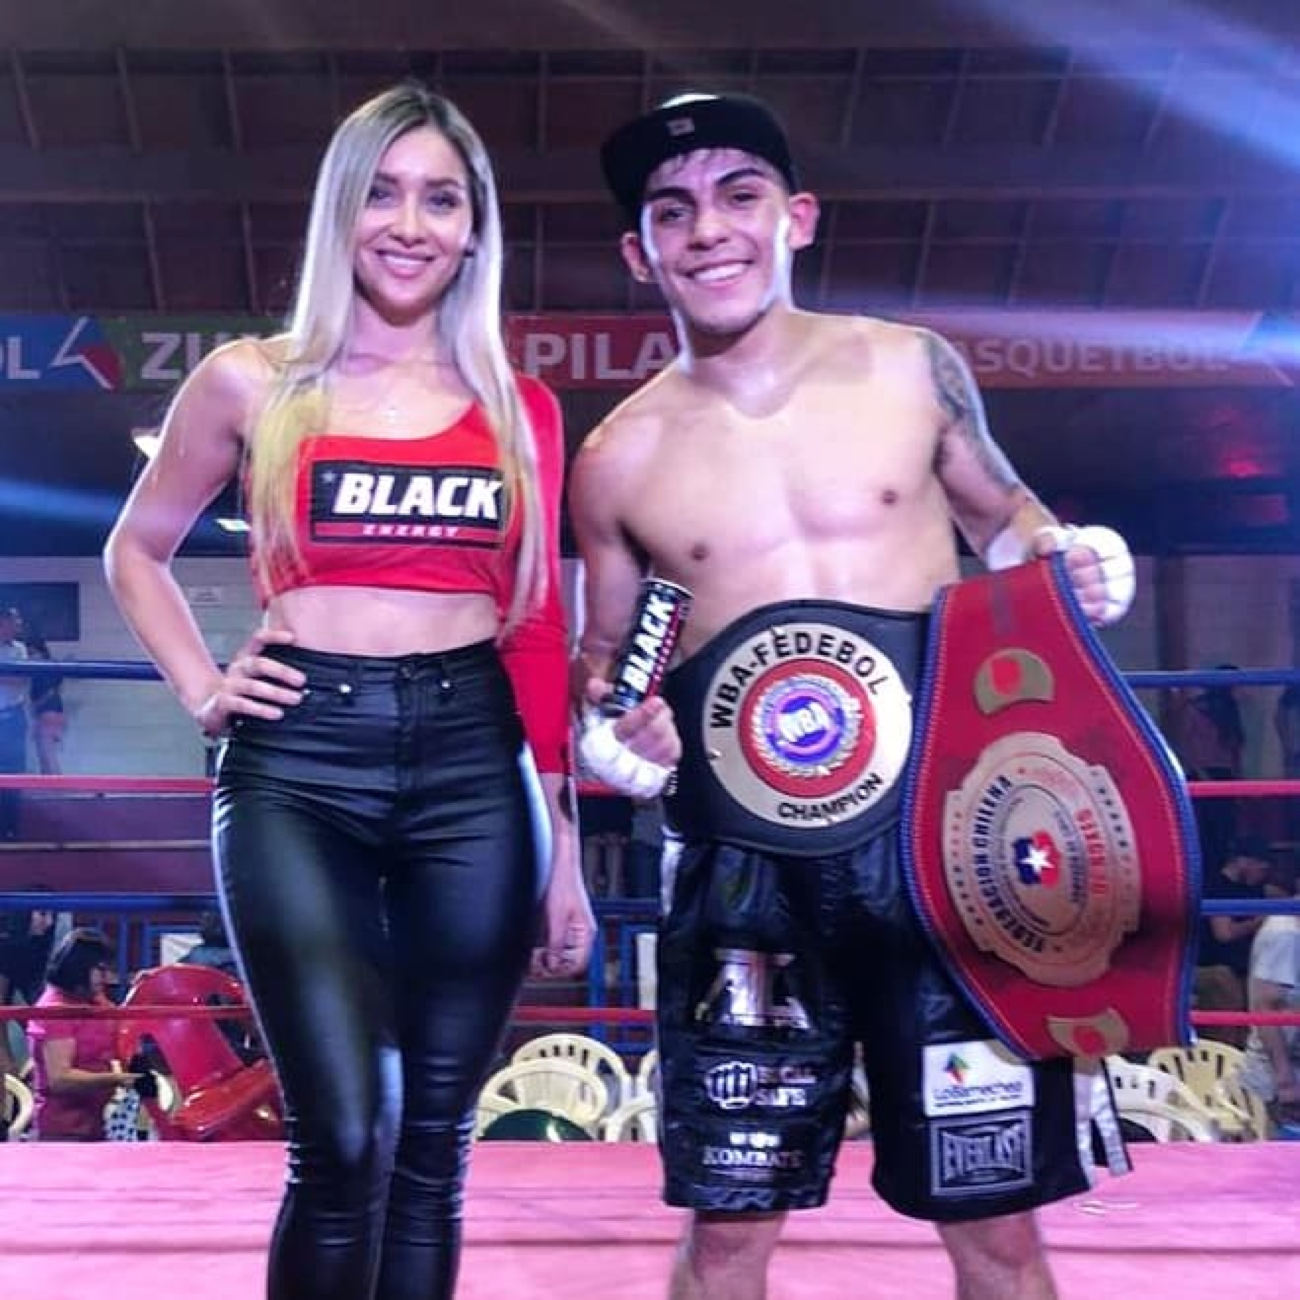 Andrés Campos - Fast-rising Chilean flyweight sensation once again produced an immaculate performance to become WBA Fedebol flyweight champion.